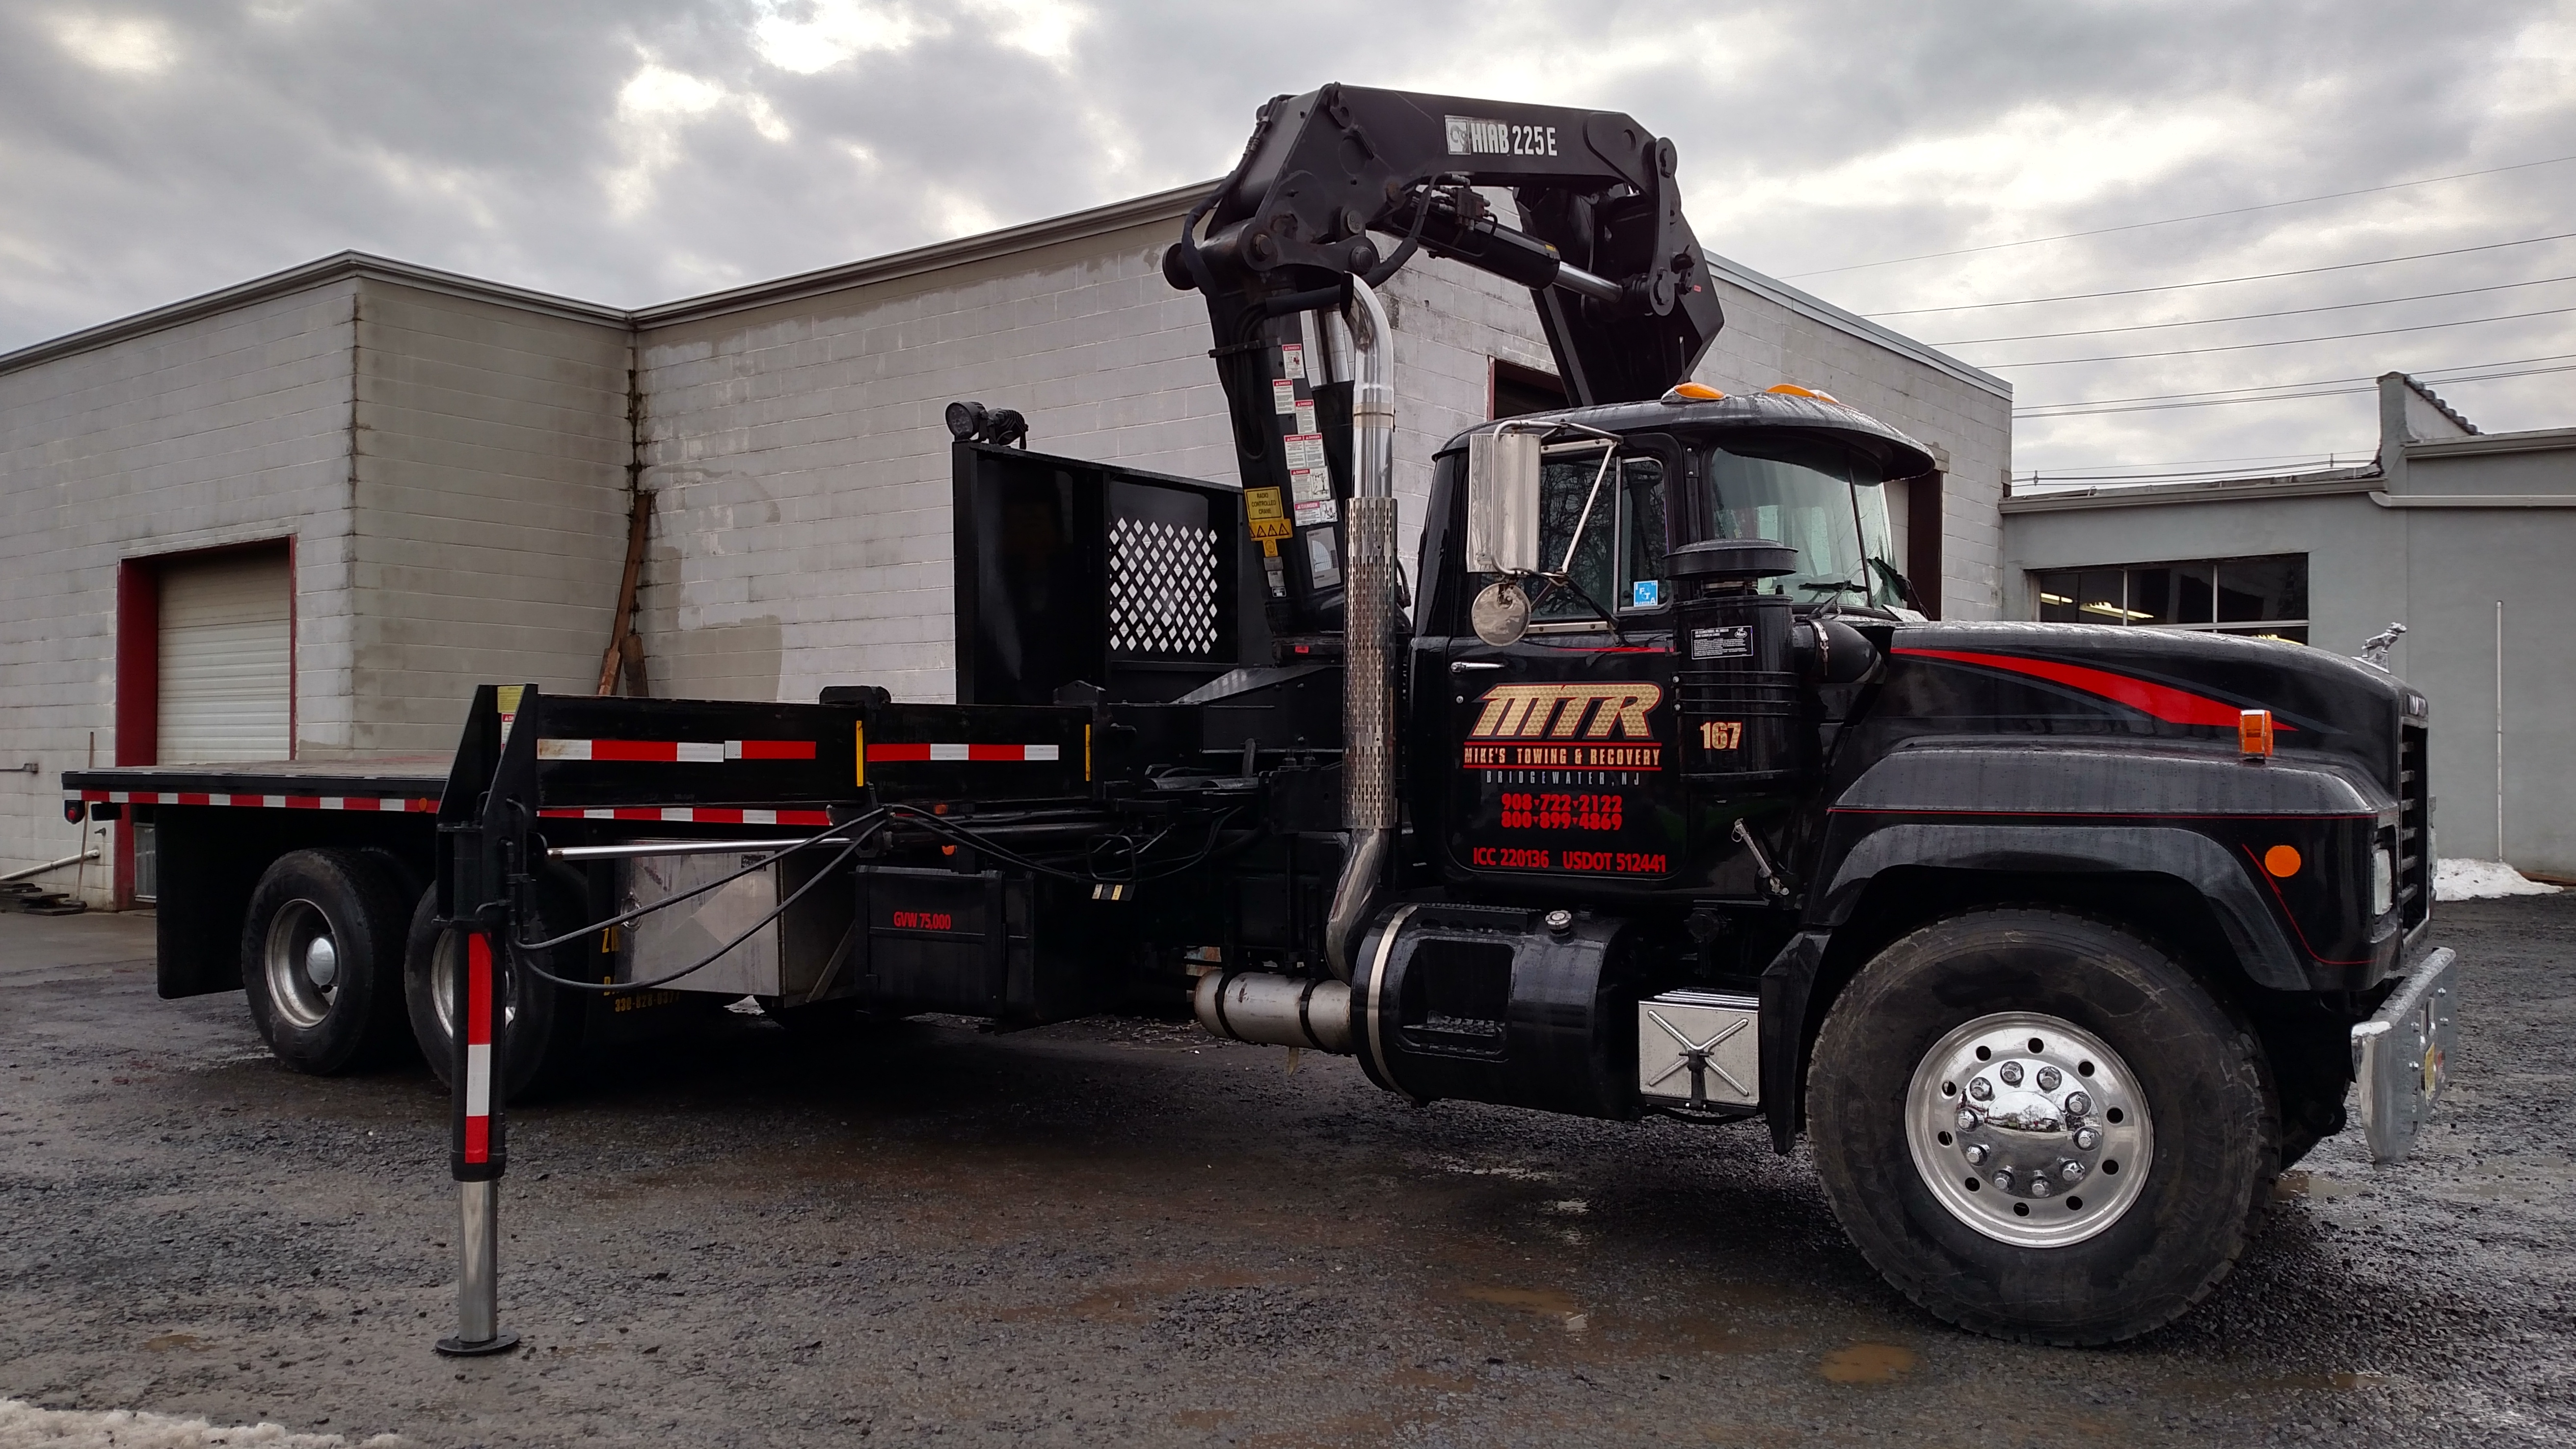 Mike's Towing & Recovery image 1